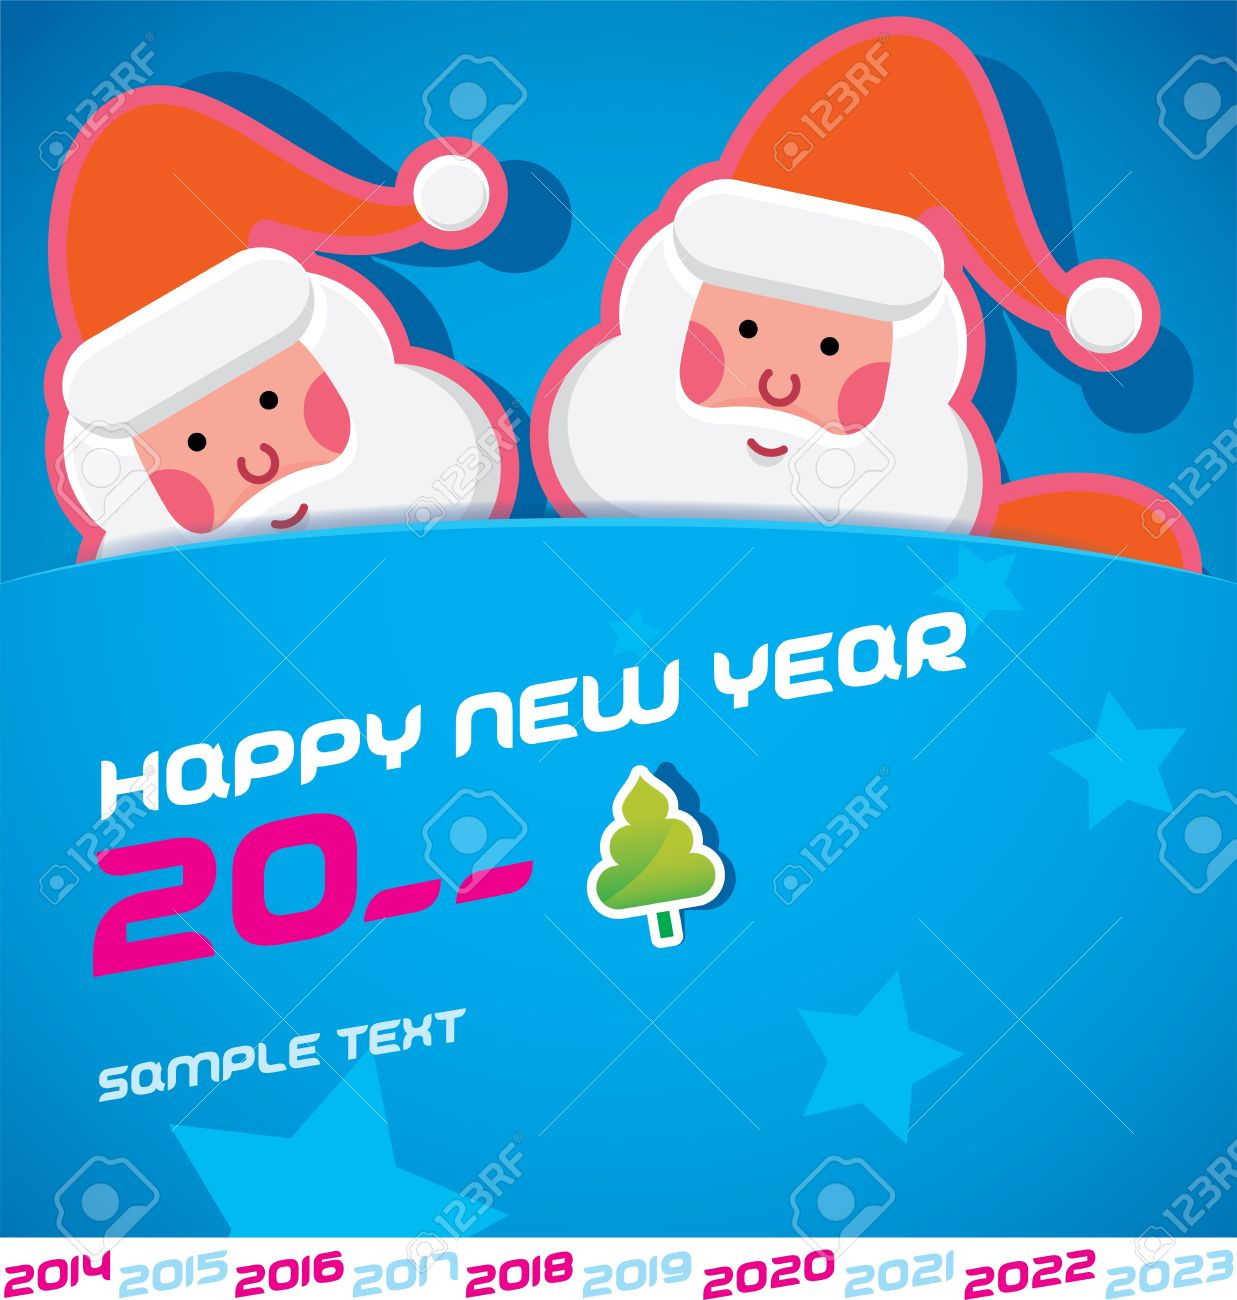 Marry Christmas 2020 2022 Merry Christmas, Santa Claus, New Year 2014, 2015, 2016, 2017